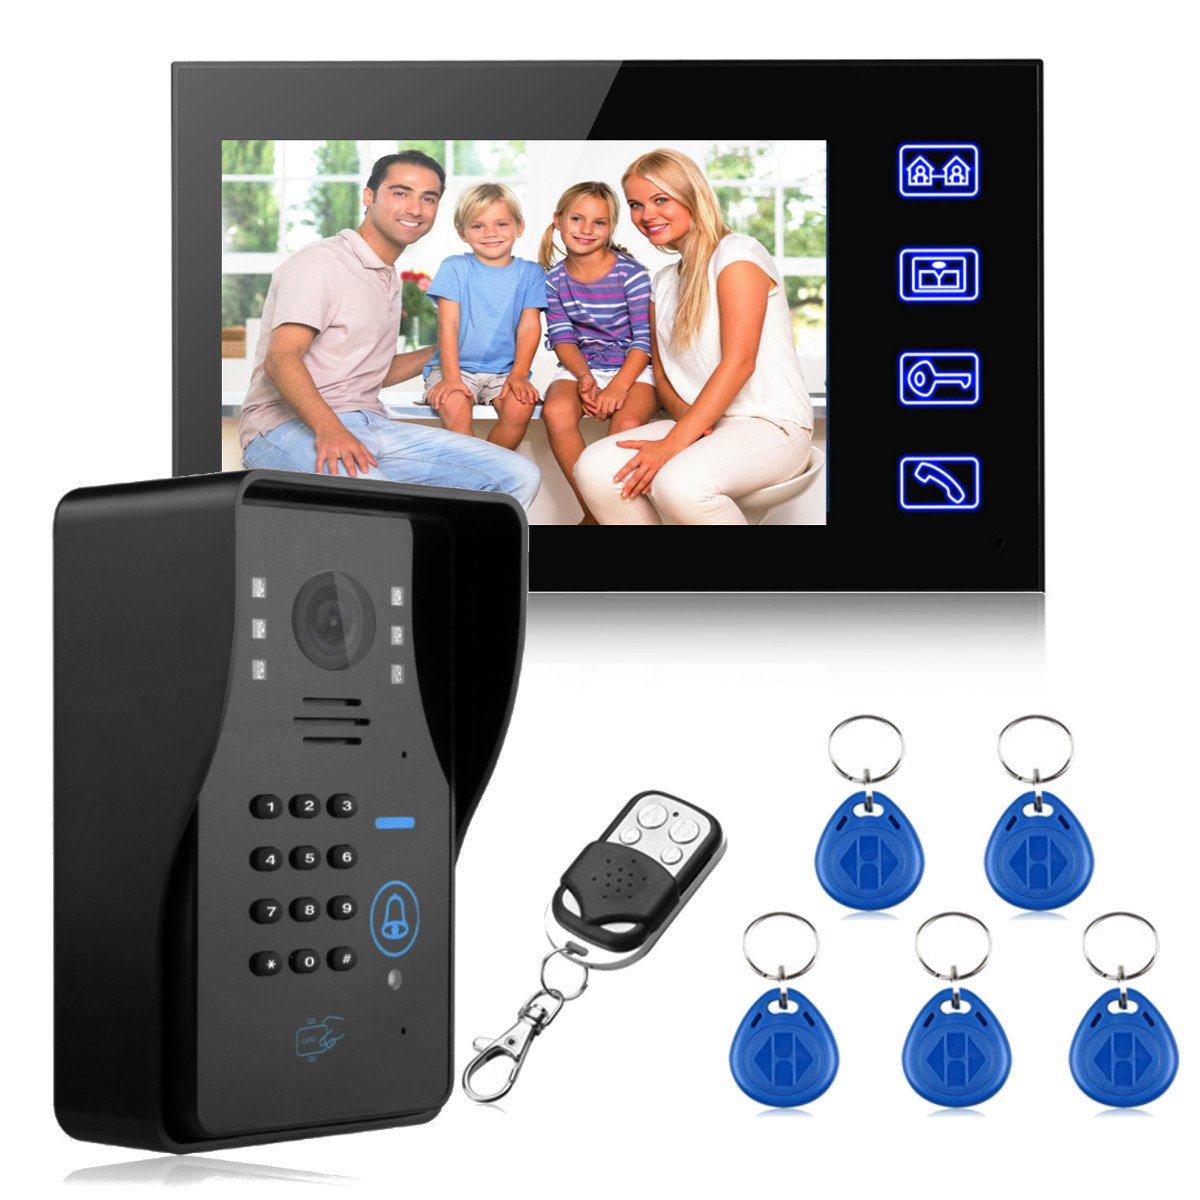 NEW Safurance 7 LCD RFID Video Door Bell Phone Doorbell Intercom System Touch Key IR Camera Home Security Building Automation touch key 7lcd wired touch key rfid password video door phone doorbell intercom system ir camera with remote control